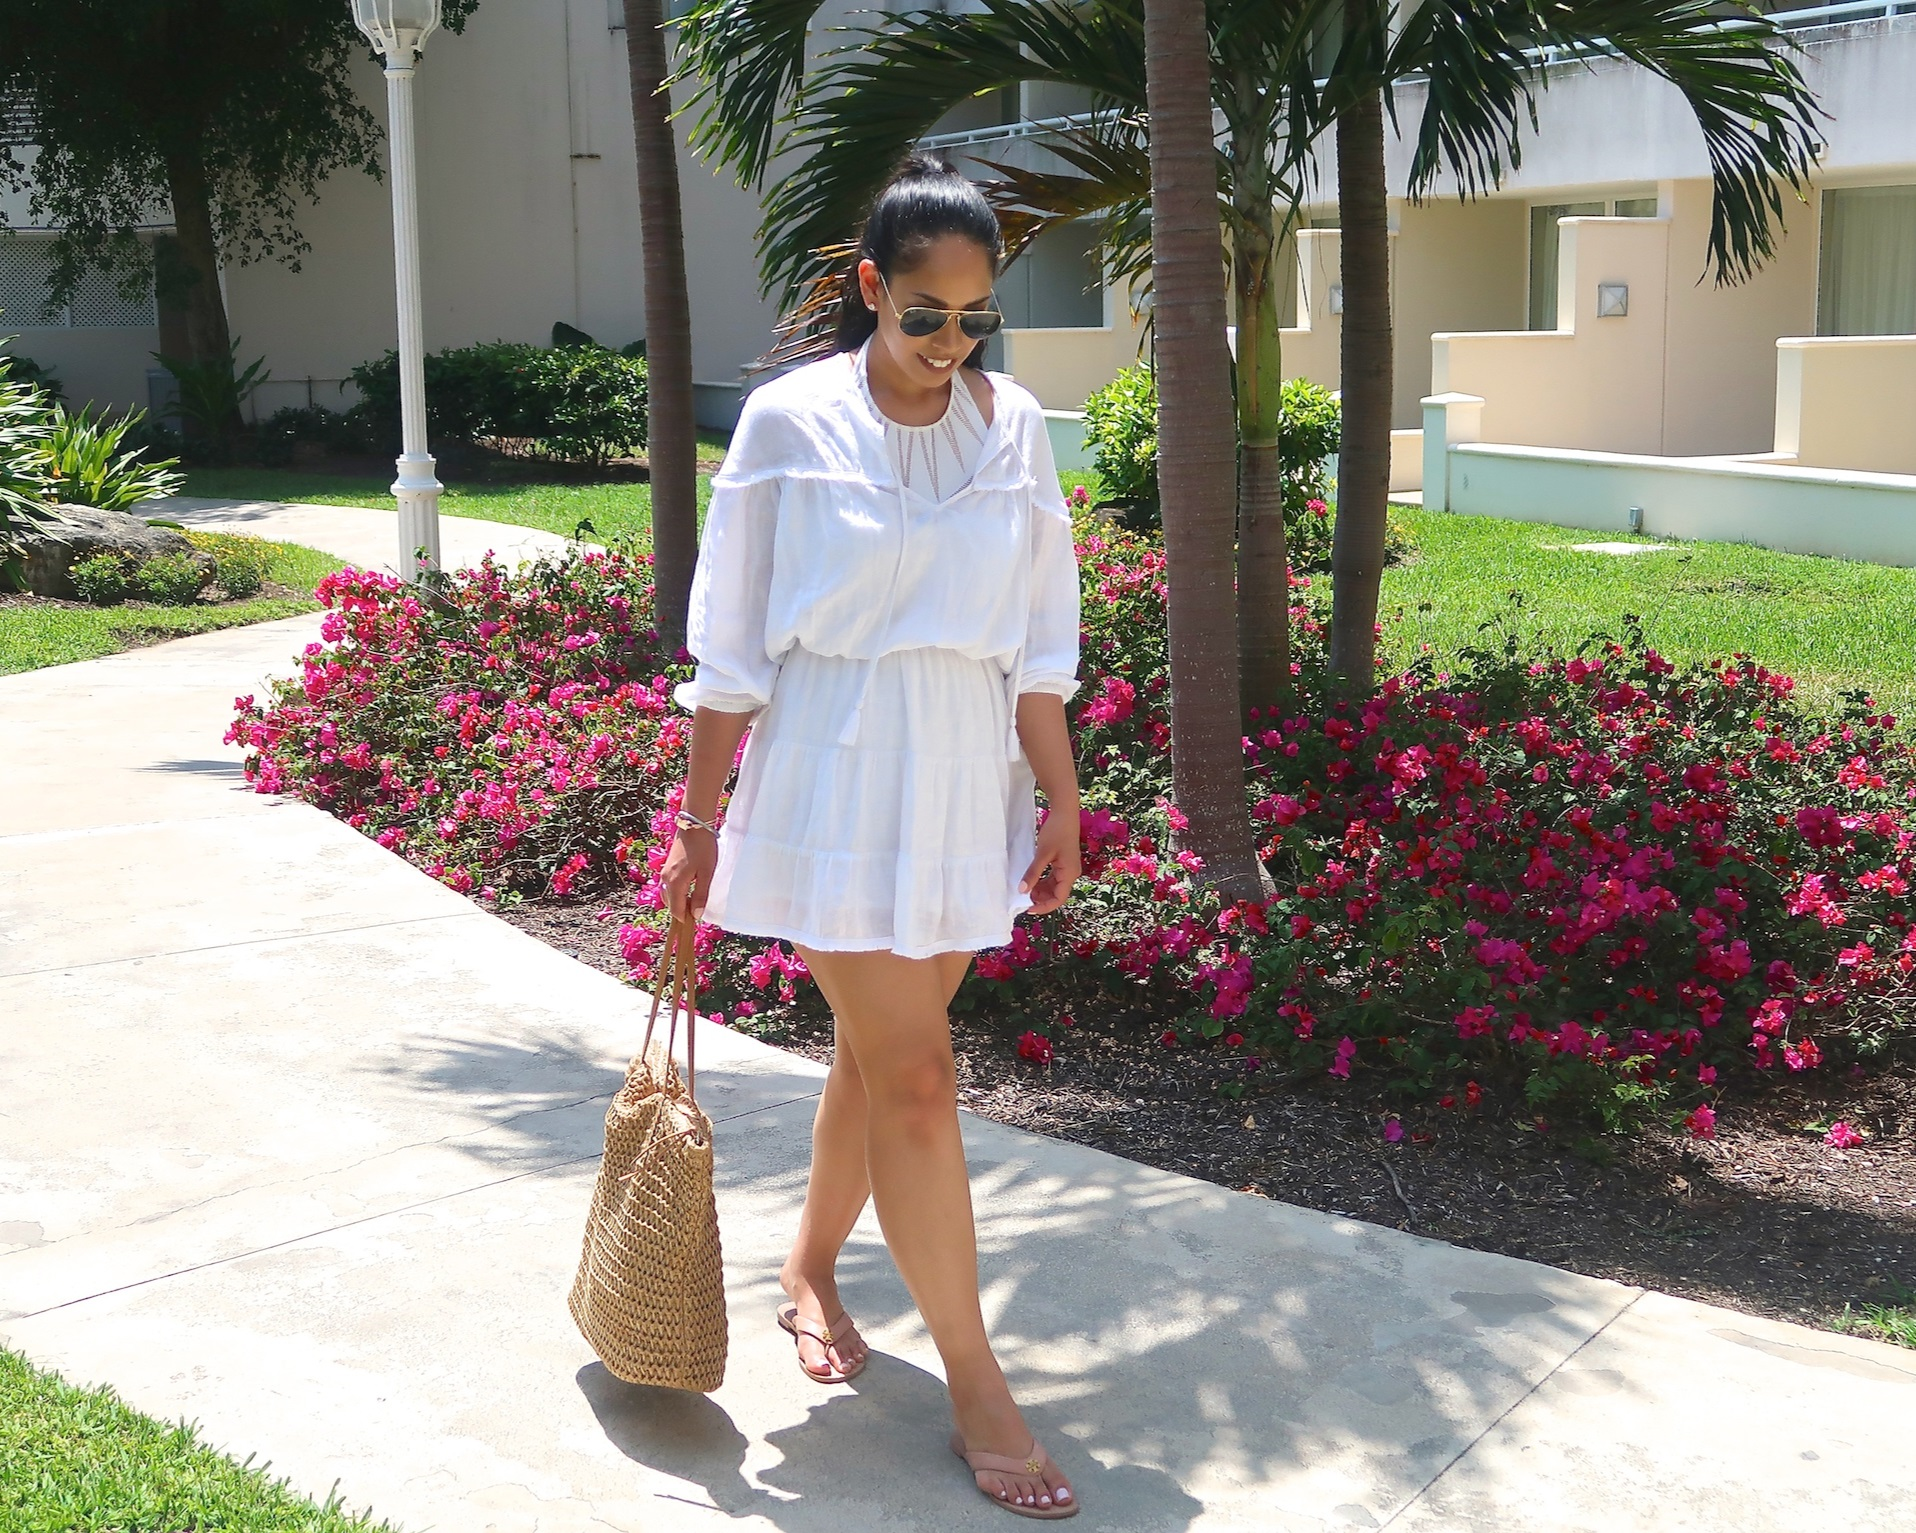 white-dress-vacation-resort-wear-fashion-blog.JPG